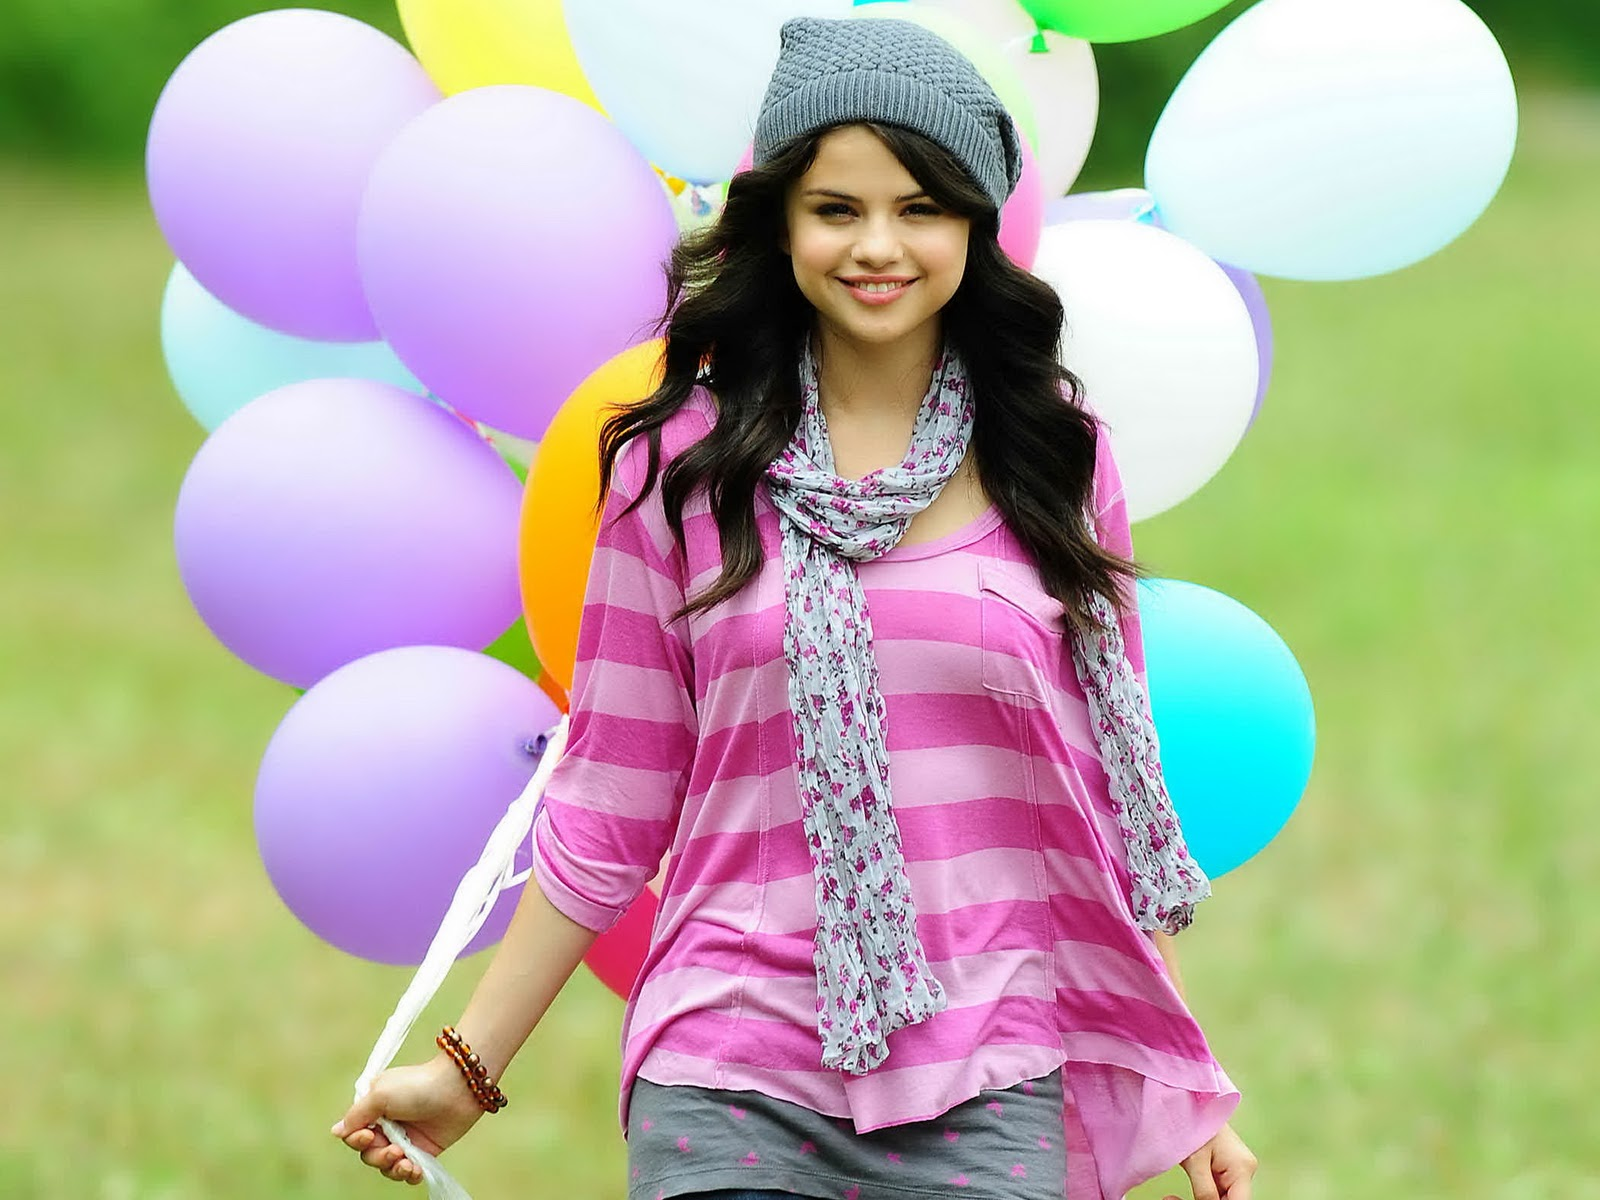 Index of image selena gomez smile 2013 hd wallpaperg voltagebd Image collections